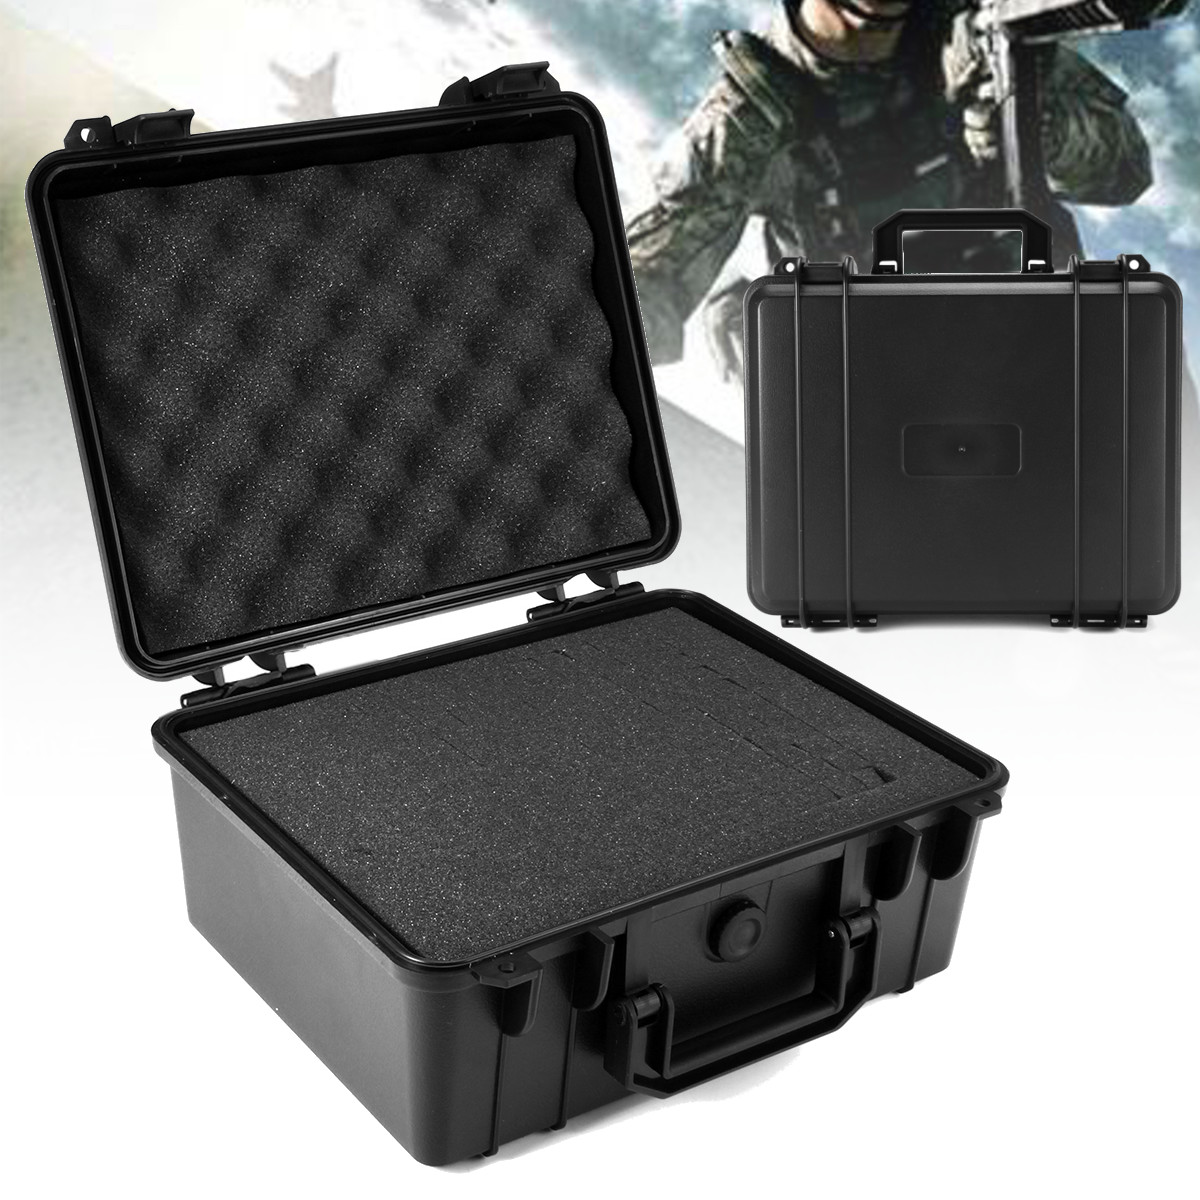 Portable Waterproof Hard Carry Case Bag Tool Kits Storage Box Safety Protector Organizer Hardware Toolbox Impact Resistant Tool Organizers